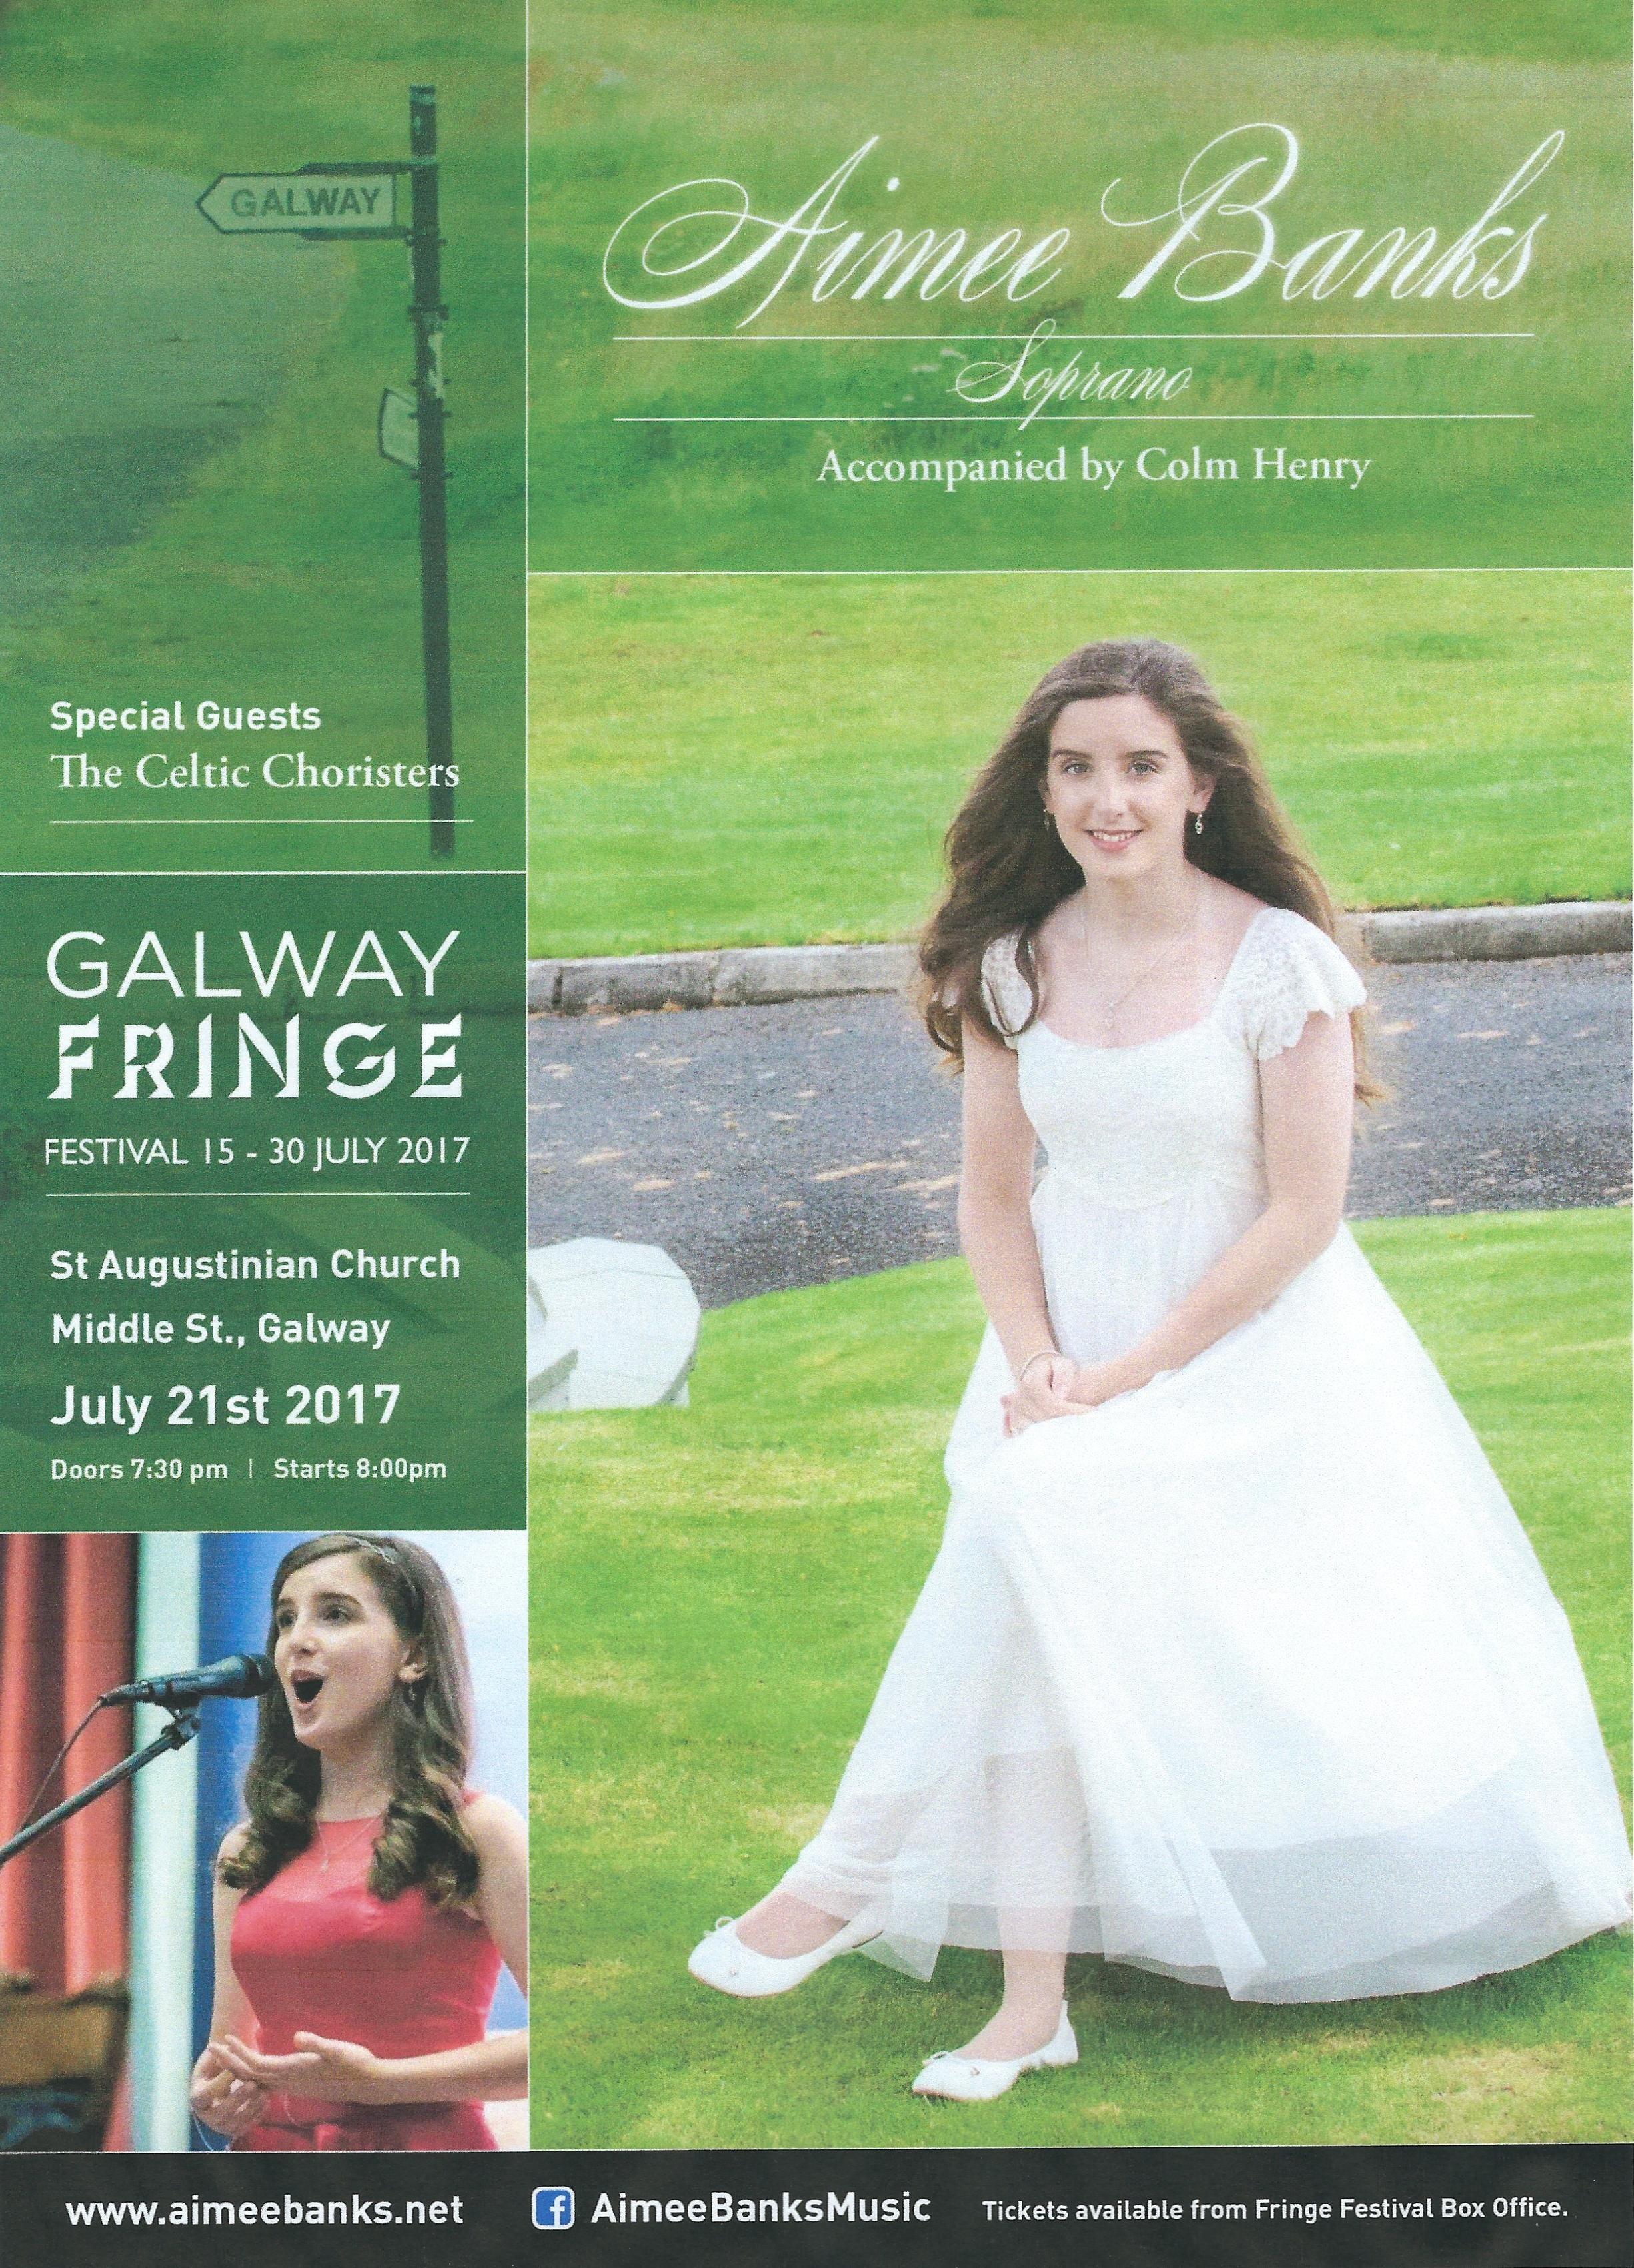 Celtic-choristers-galway-fringe-2017